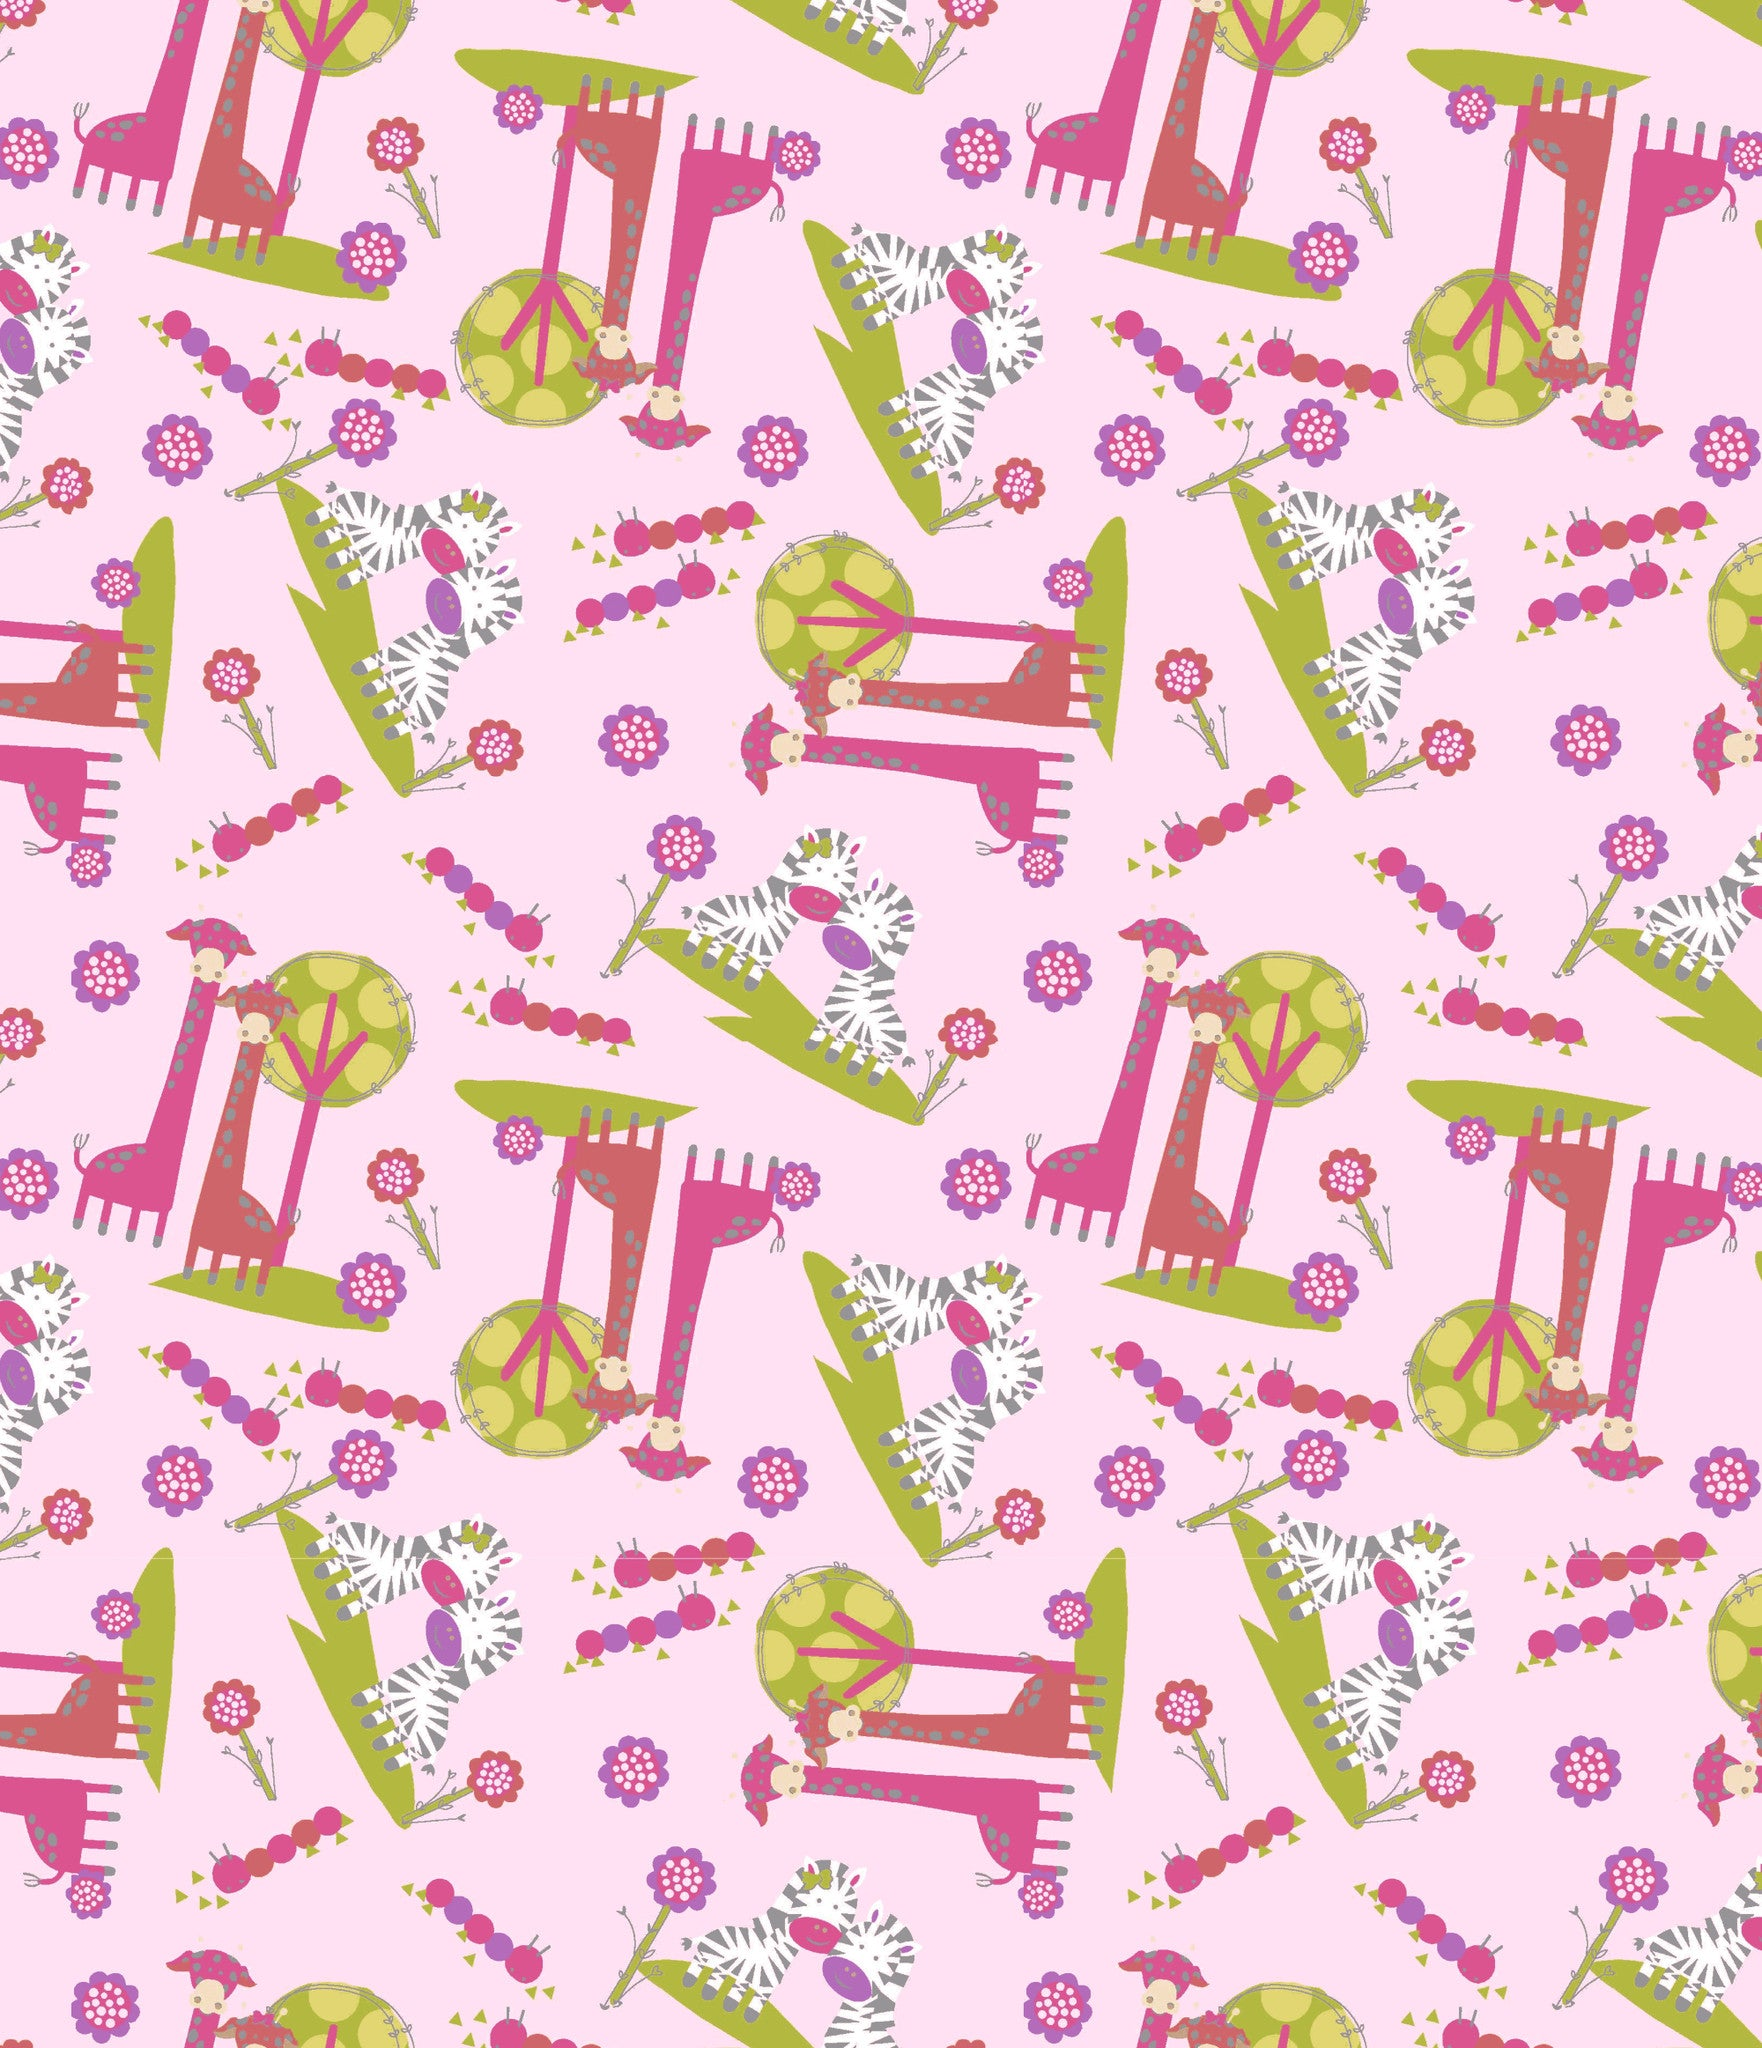 Cotton Flannel Print Zebra Pink